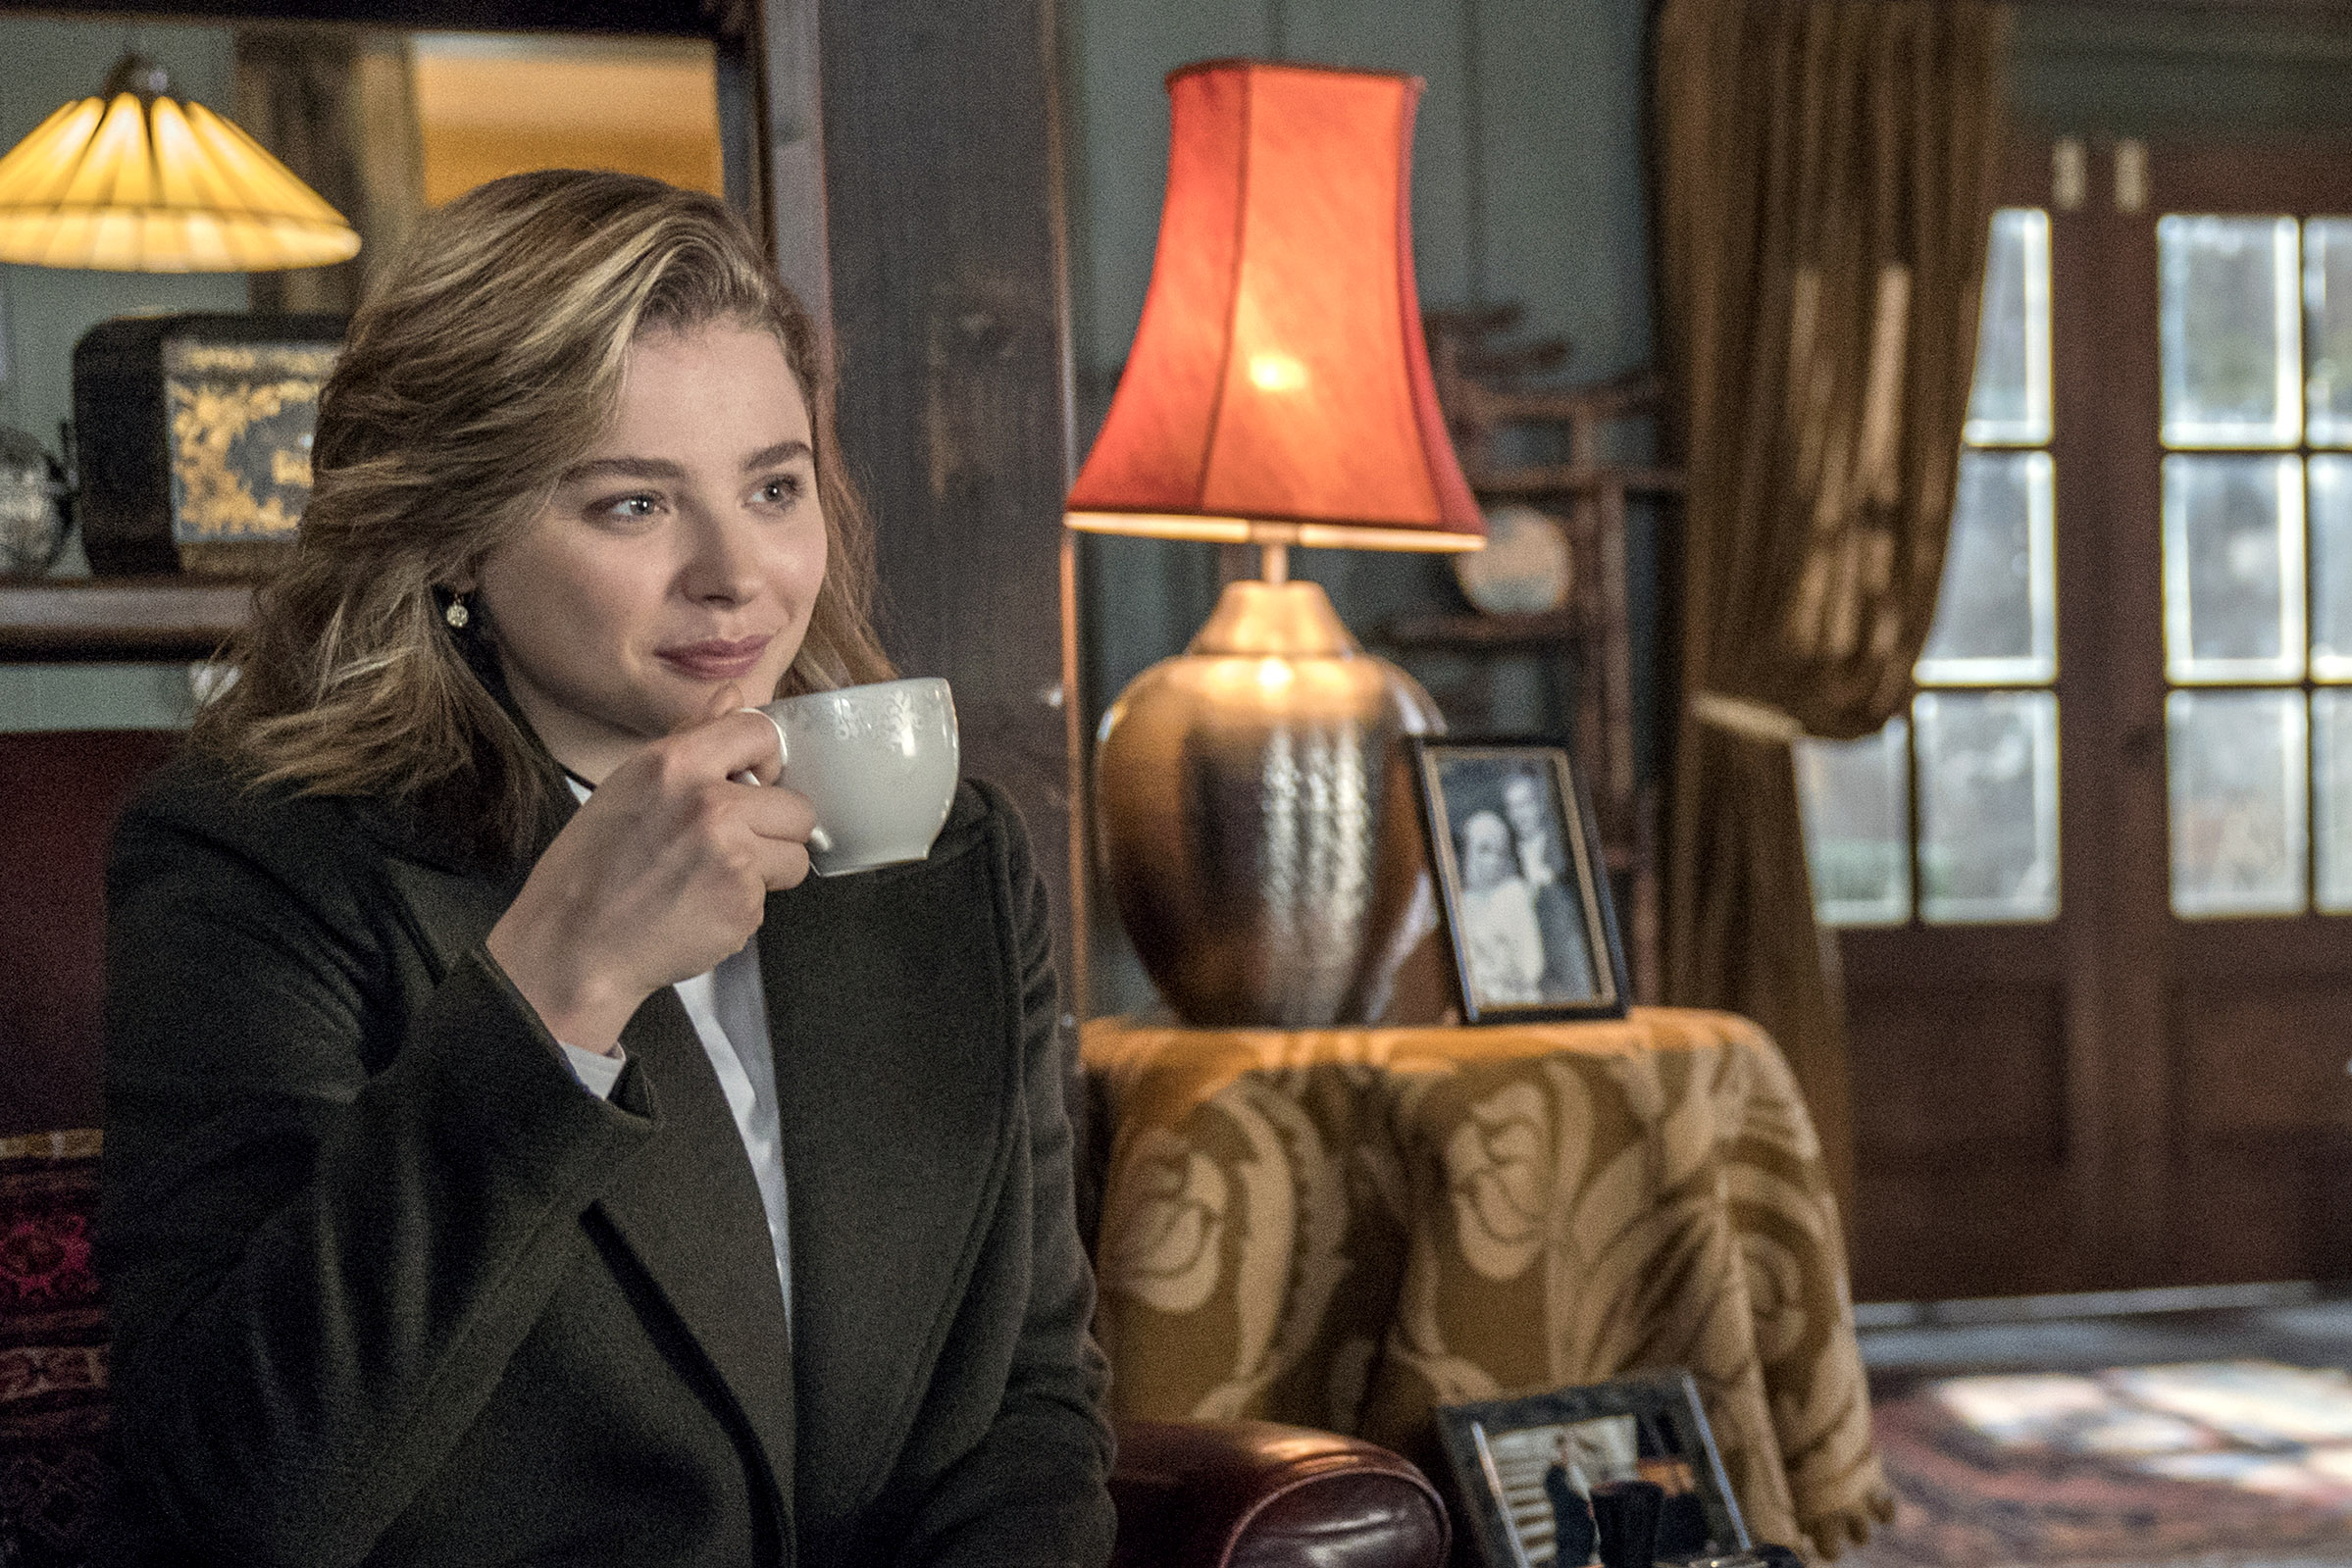 Chloe Grace Moretz and Isabelle Huppert star in a scene from the movie